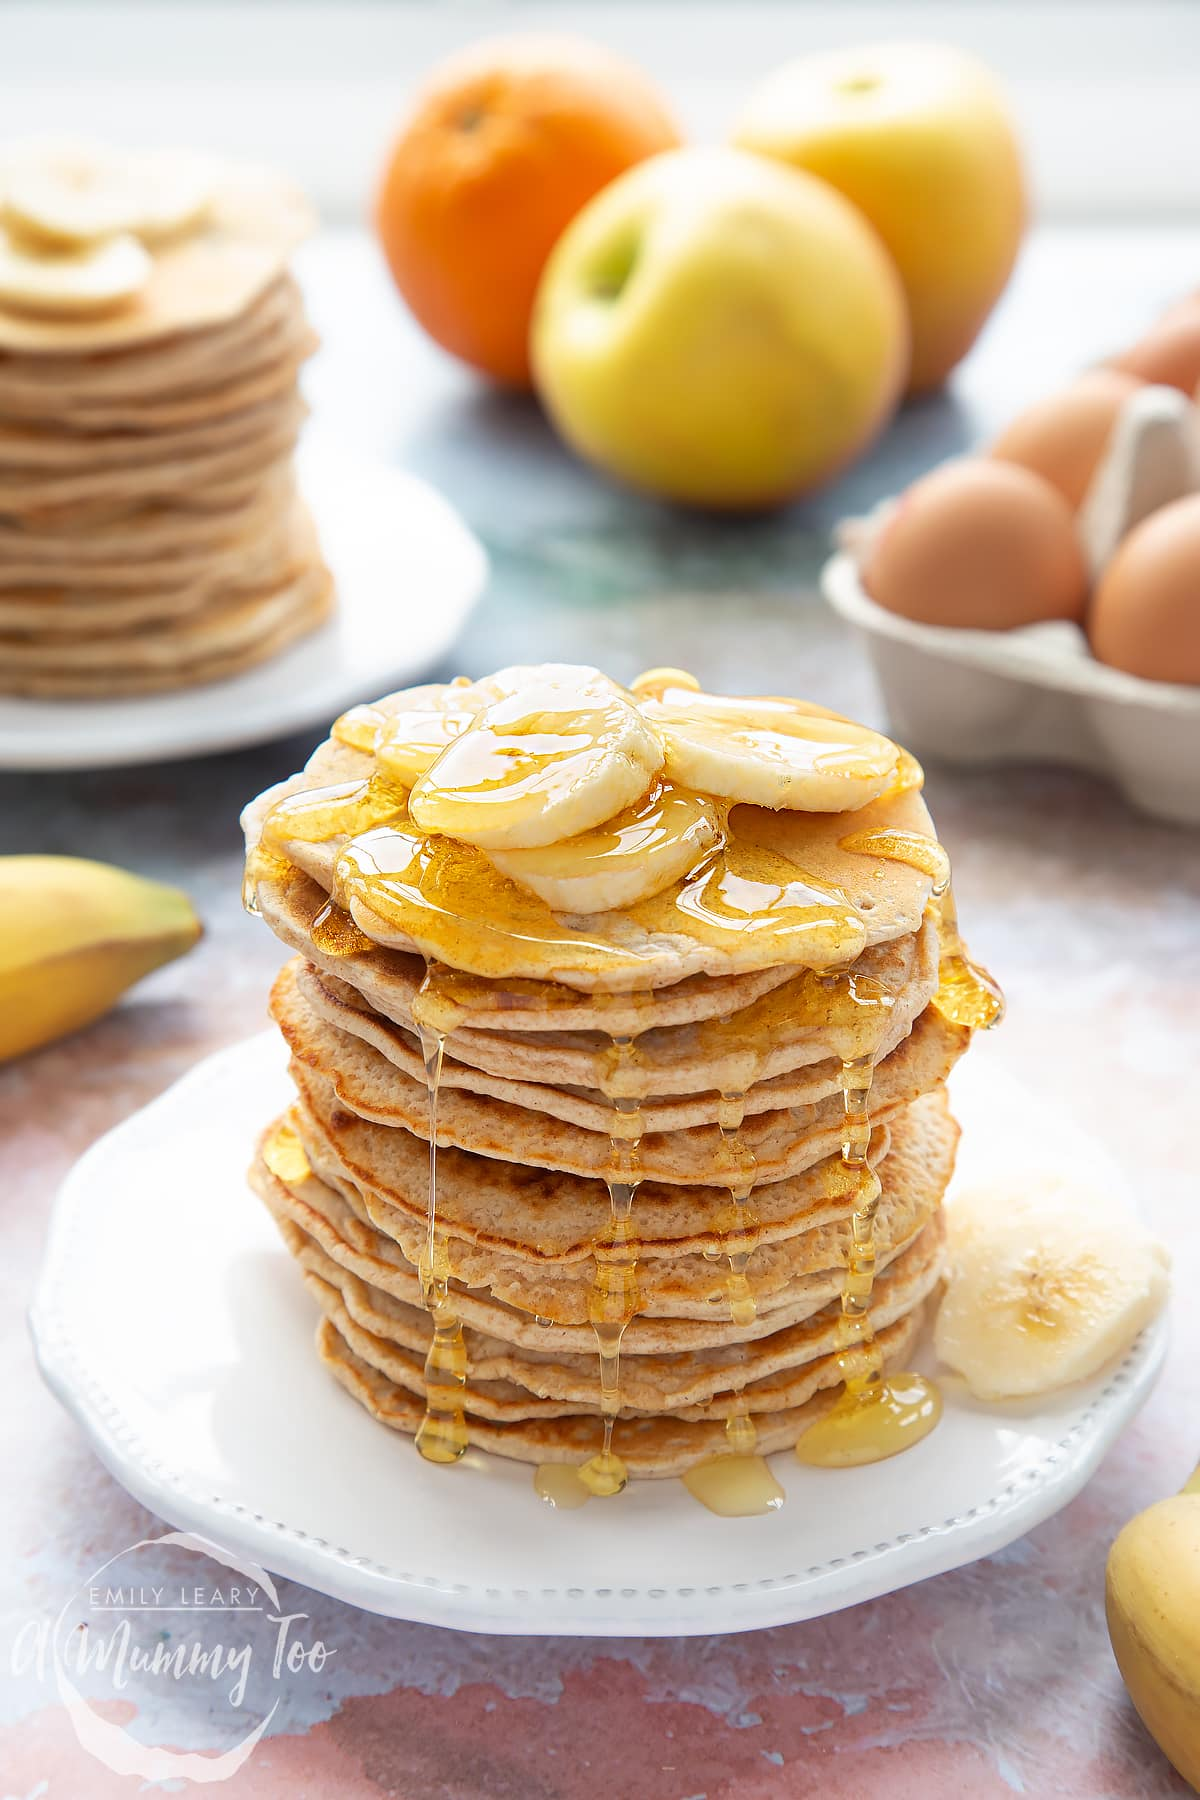 Overhead shot of a pancake stack on a white plate topped with banana and syrup with the A Mummy Too logo in the corner